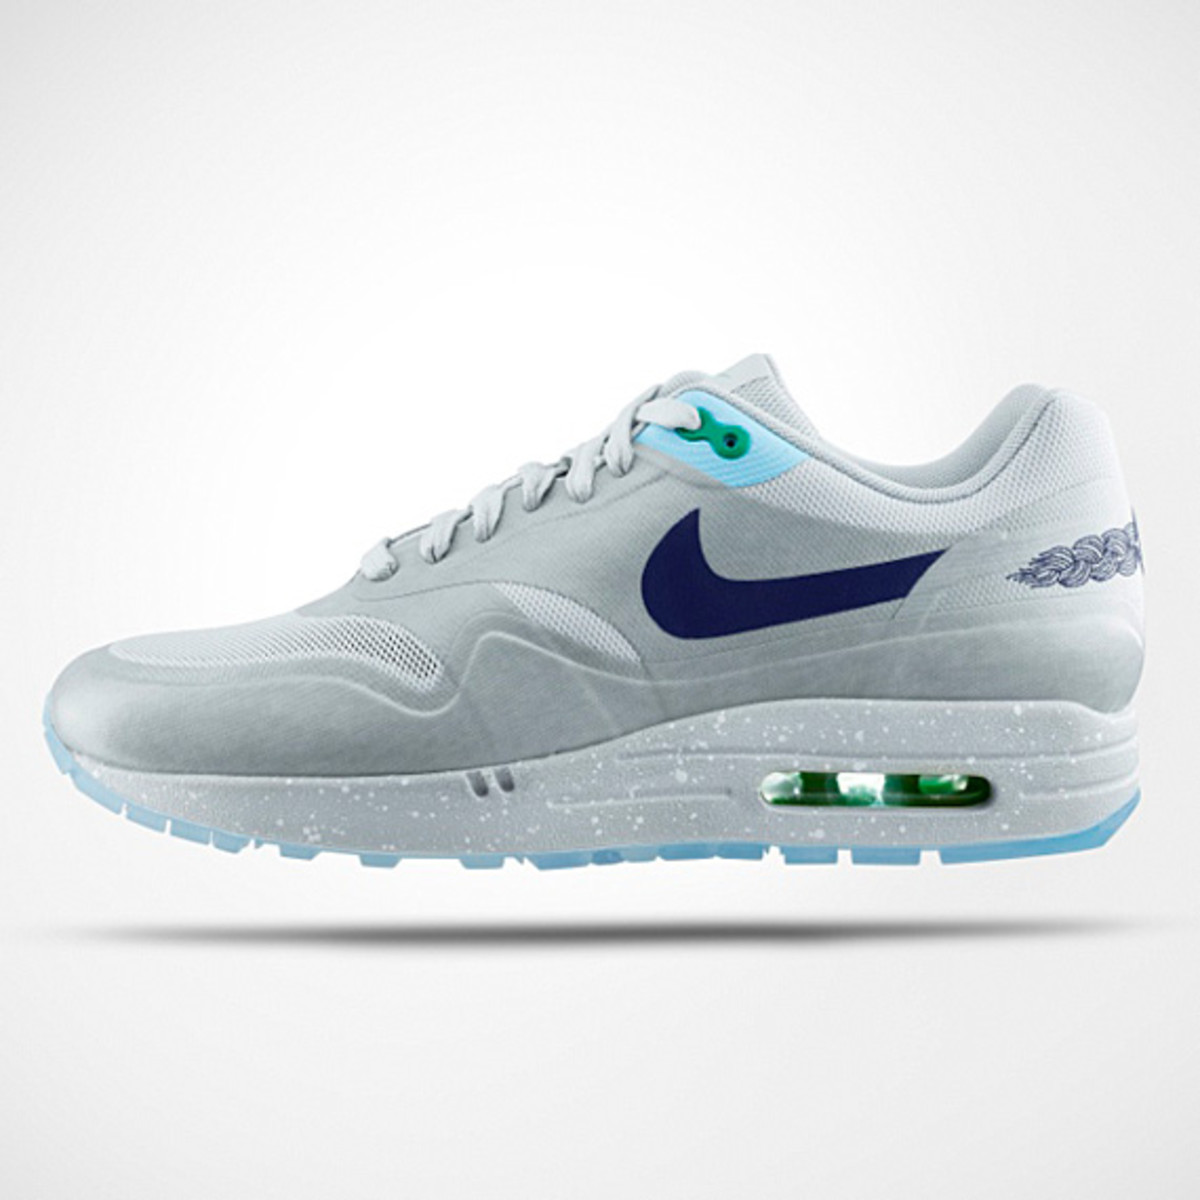 clot-x-nike-air-max-1-sp-detailed-look-01